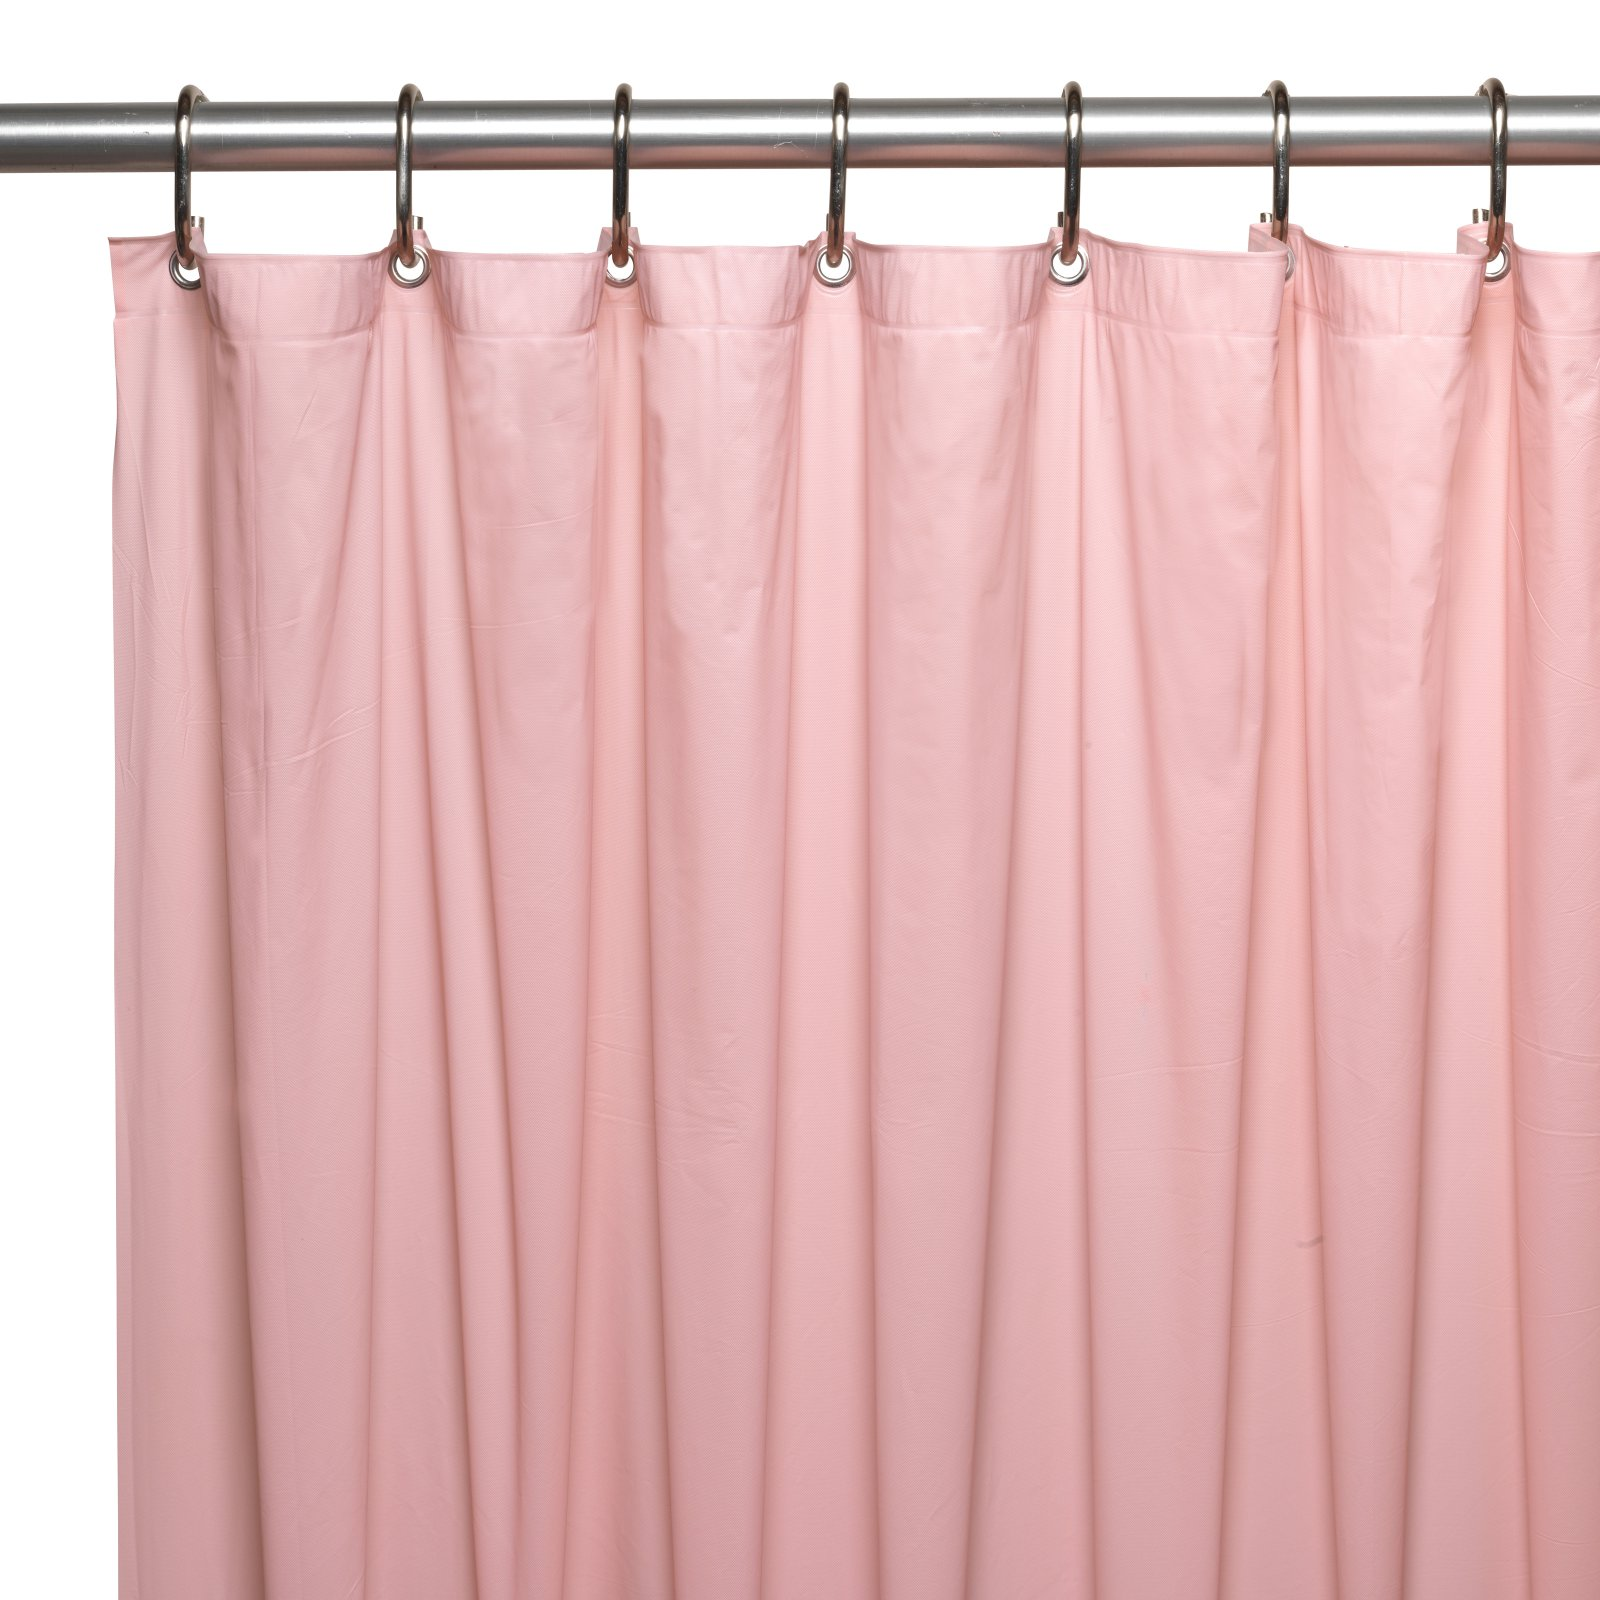 Hotel Collection, 8 Gauge Vinyl Shower Curtain Liner w/ Metal Grommets in Pink